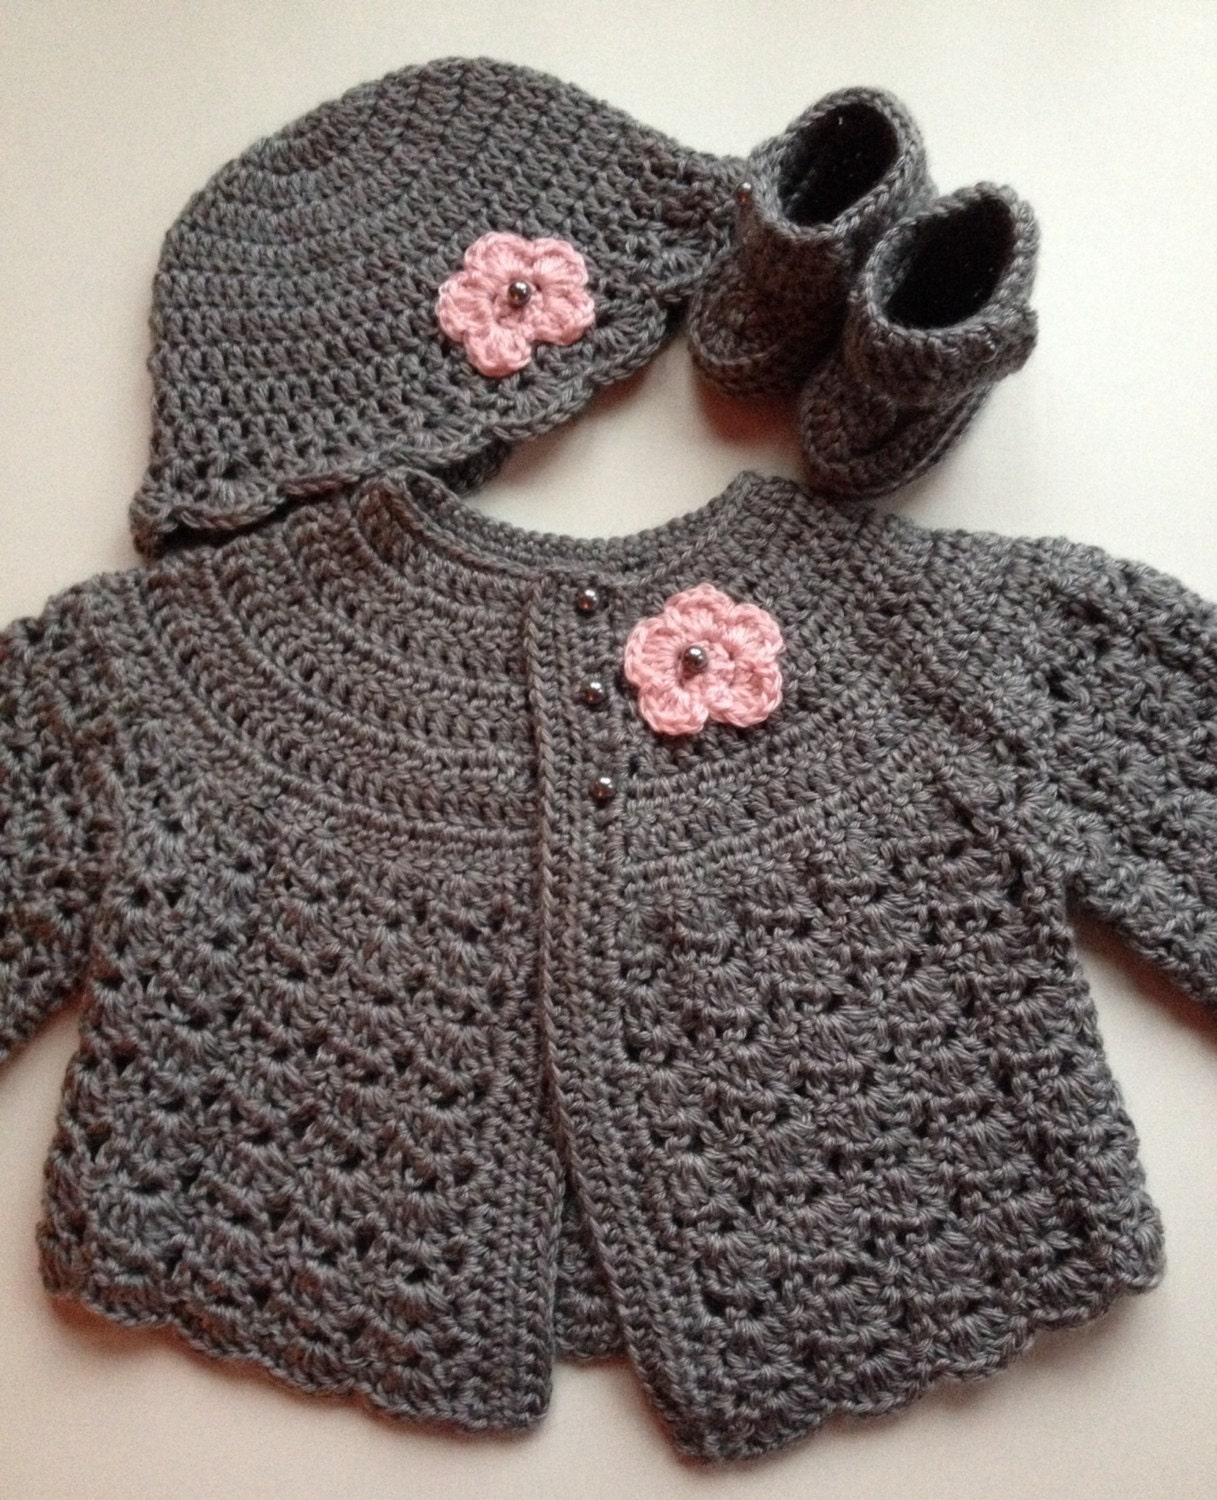 Crochet Baby Hat And Sweater Pattern : Crochet Baby Sweater Hat Booties Set Heather Grey 3-6 mo